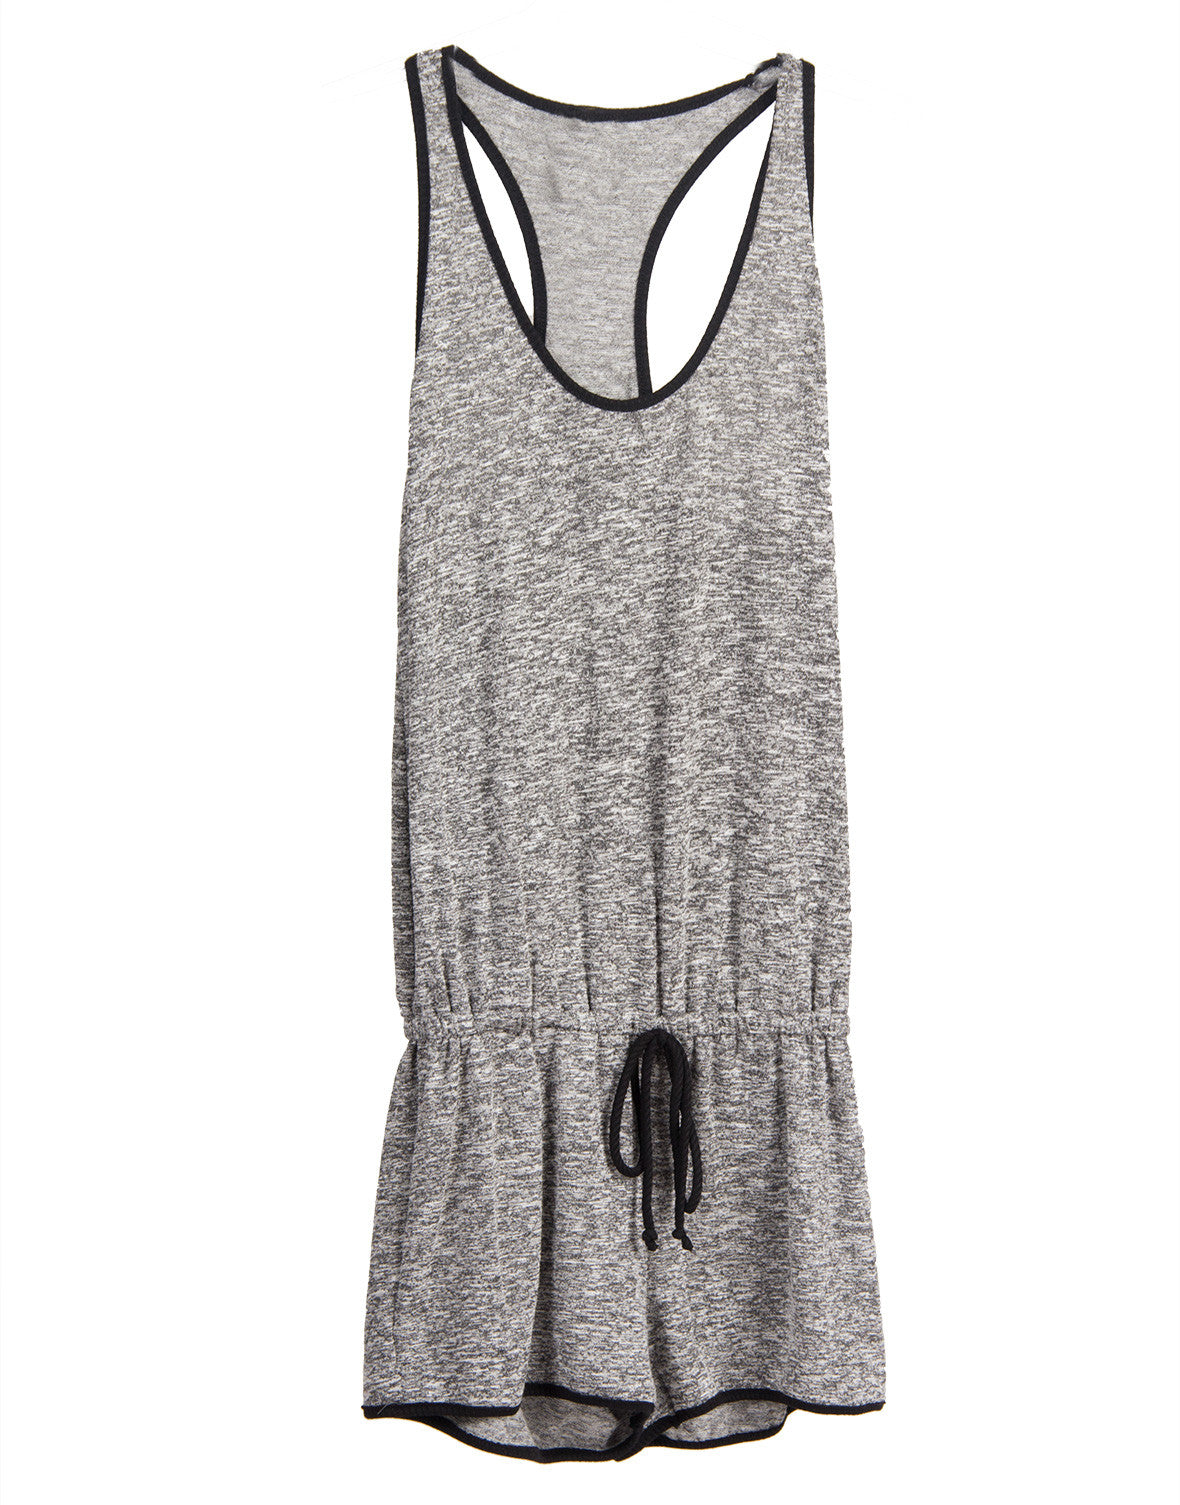 Heathered Solid Trim Romper - Large